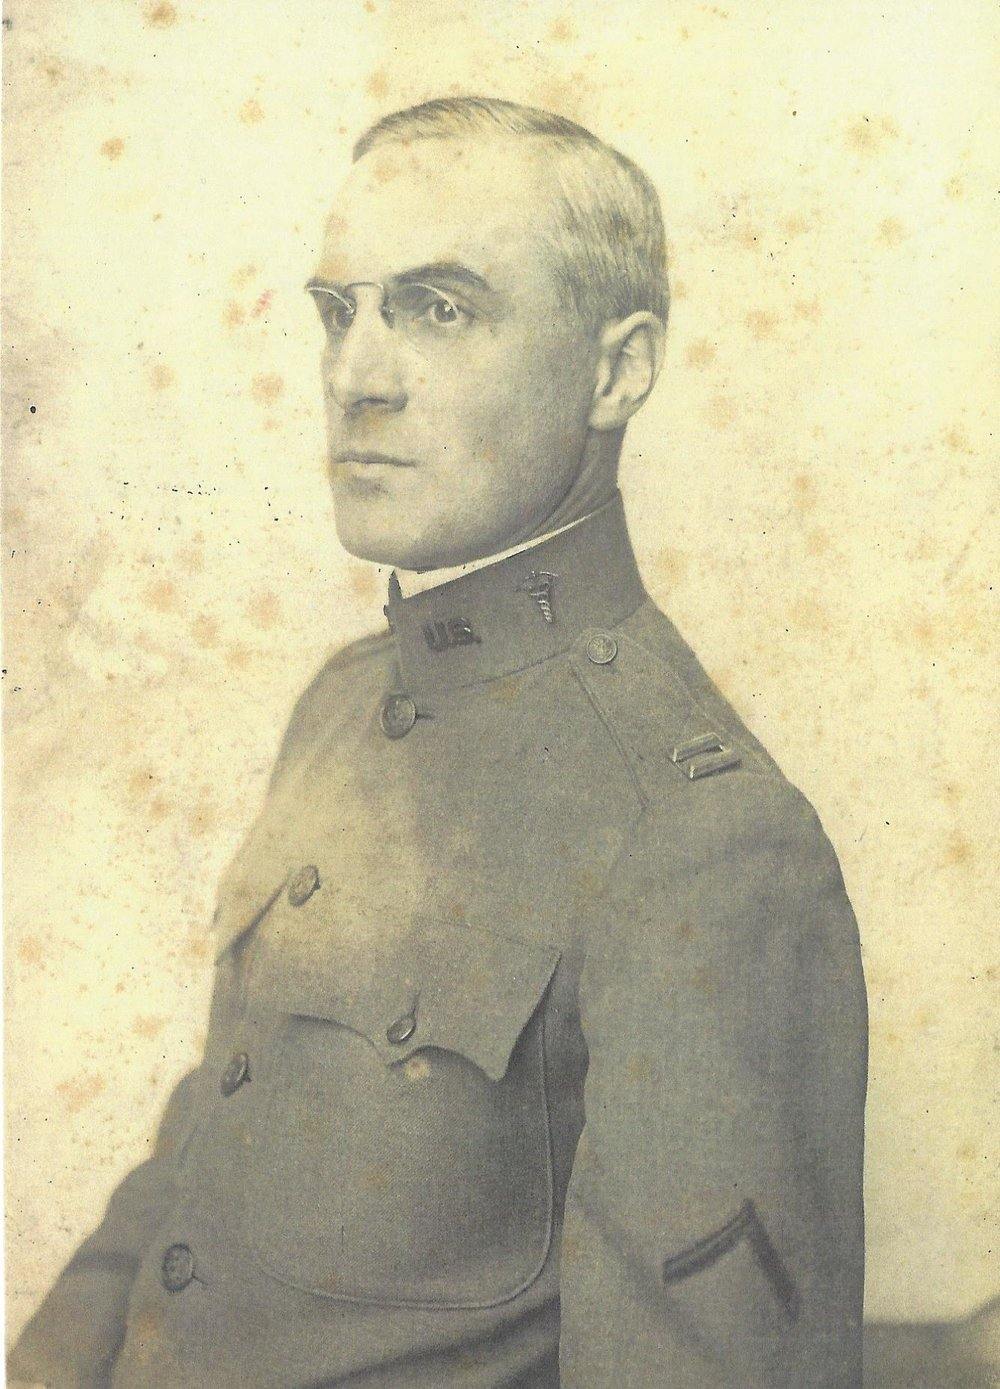 Major James Wyckoff, M.D. circa 1918 -